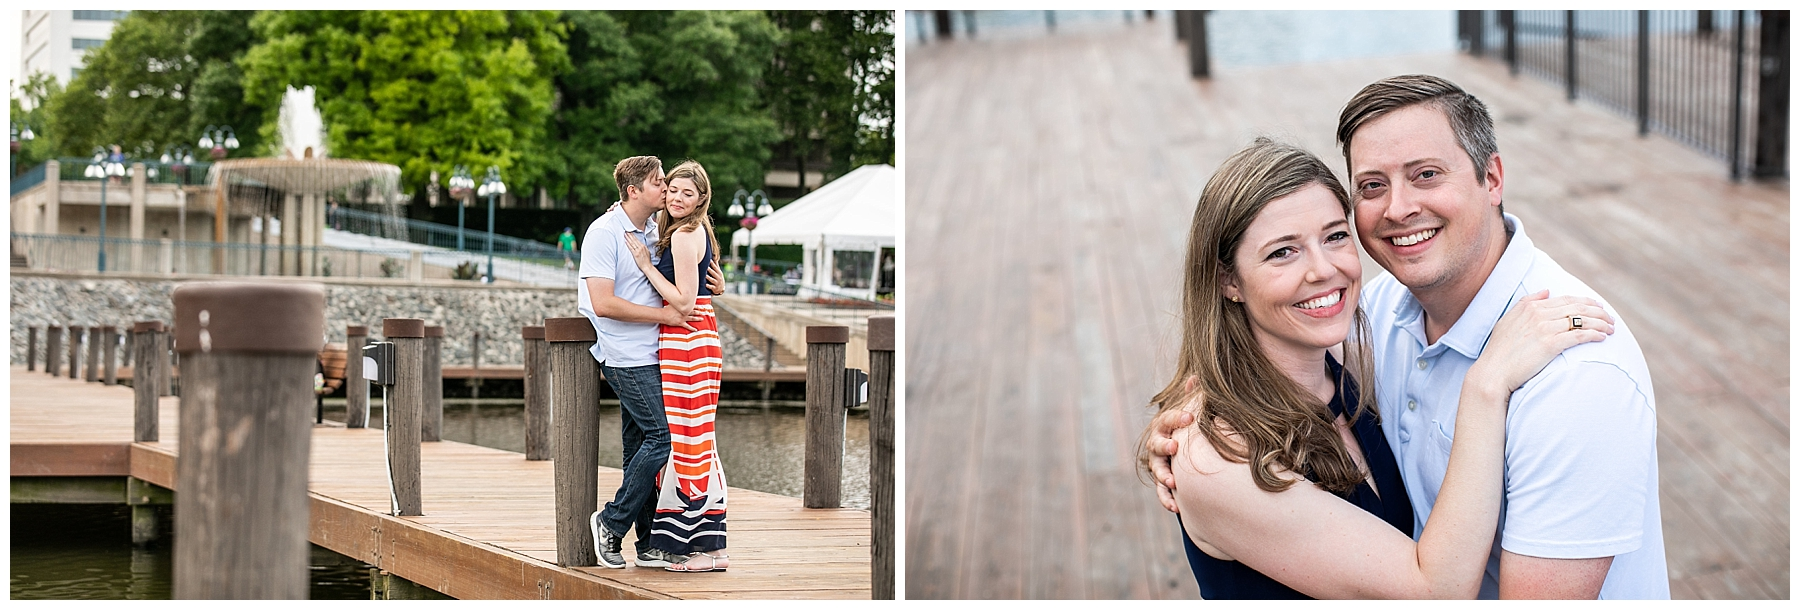 Danielle Shane Columbia Engagement Session Living Radiant Photography photos_0013.jpg